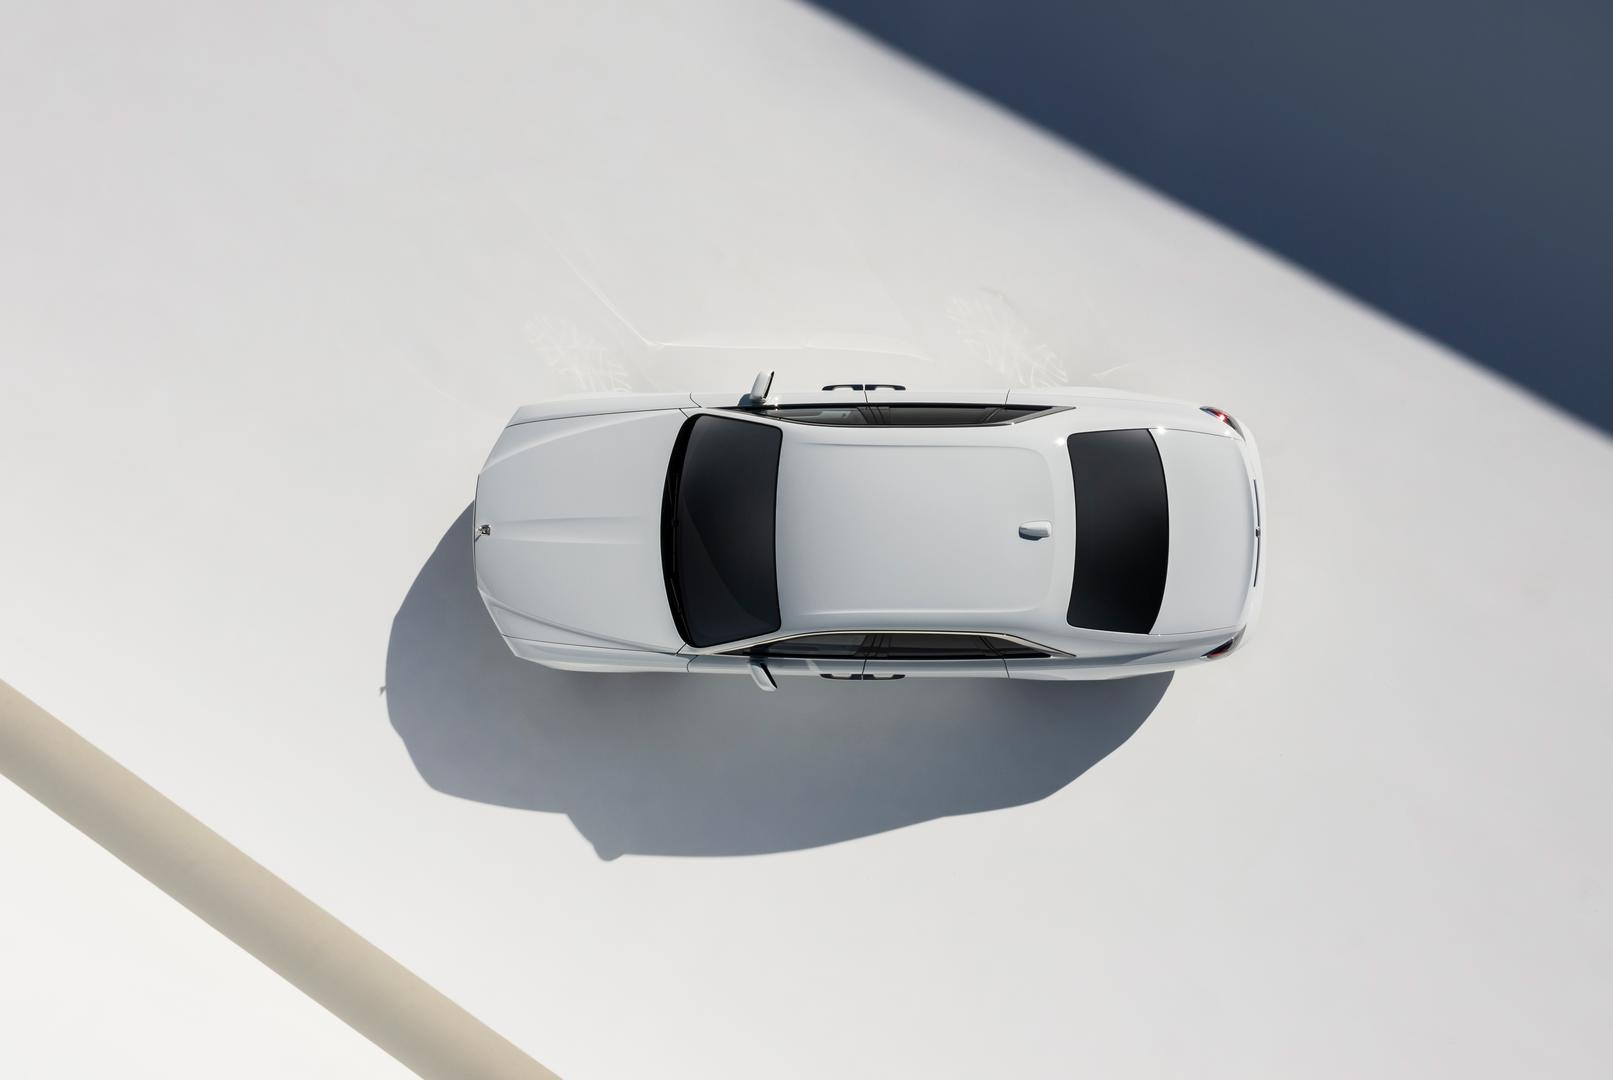 2021 Rolls-Royce Ghost Roof